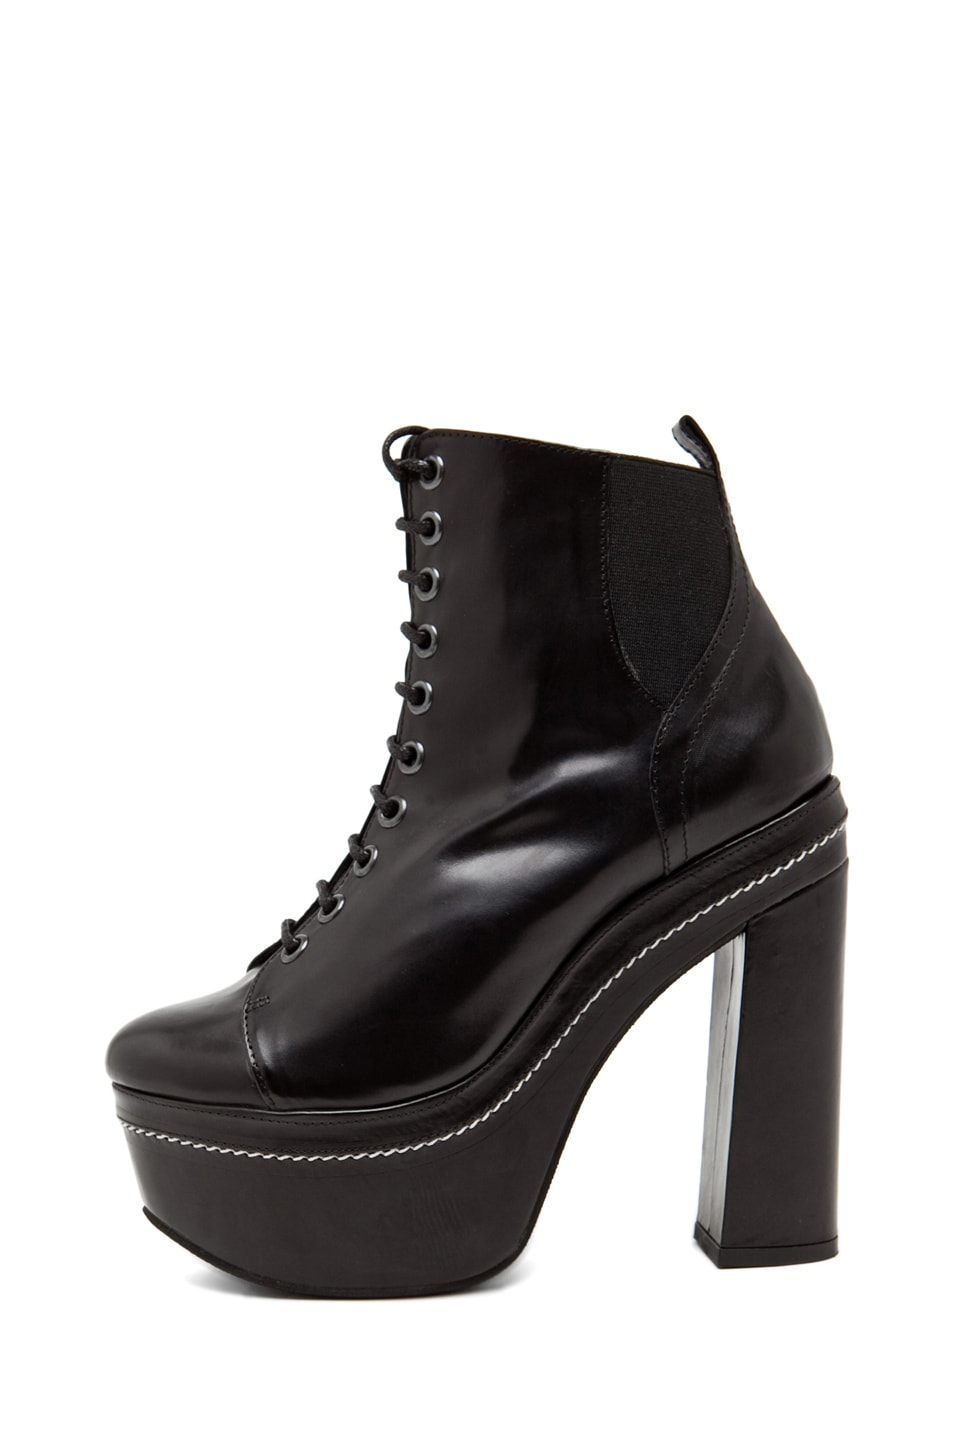 Image 1 of Opening Ceremony Bernadette Lace Up Bootie in Black